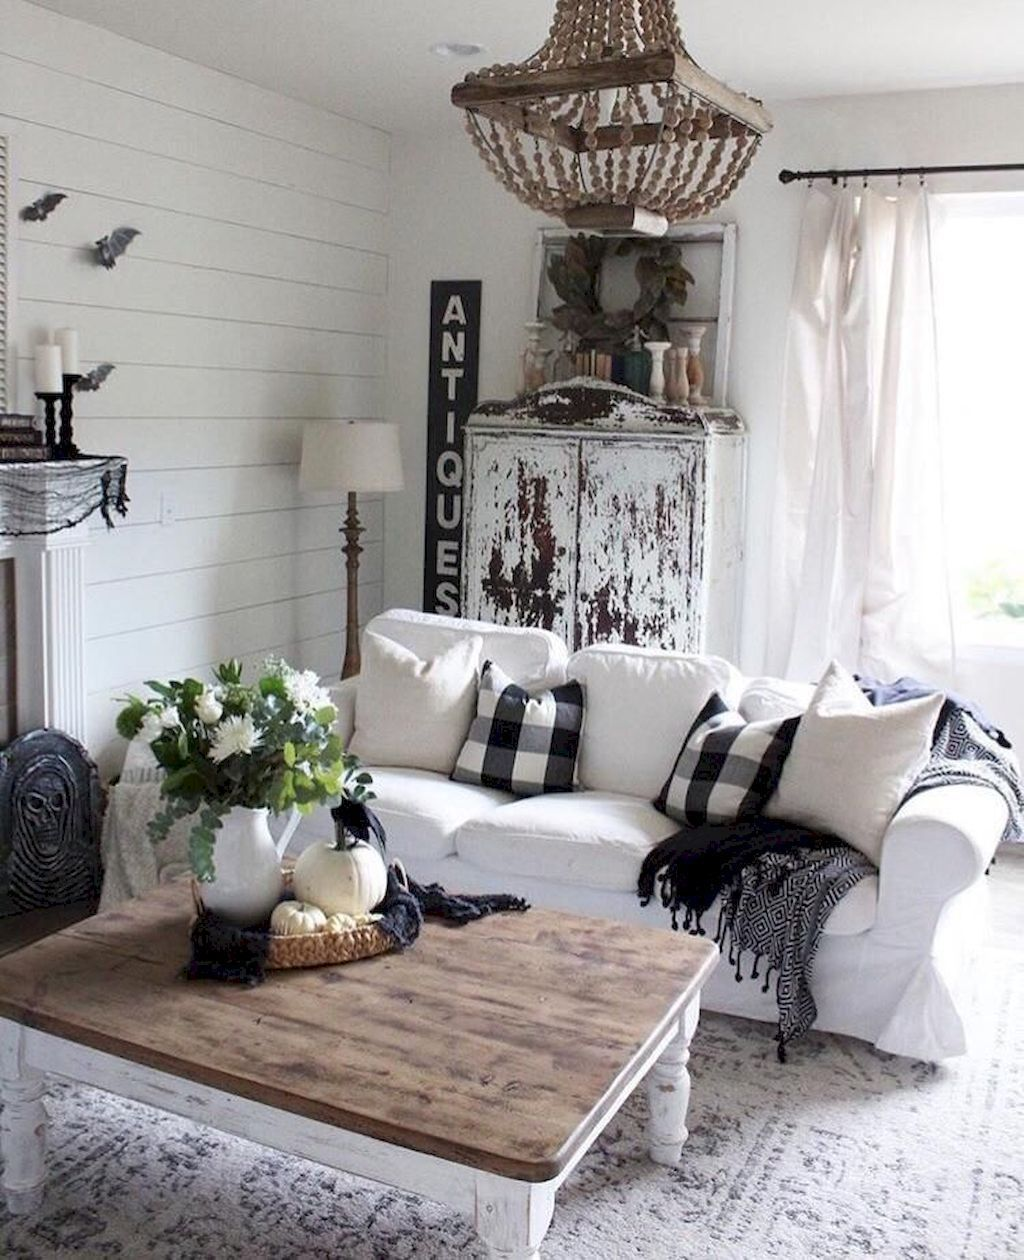 Home Decorating Ideas Farmhouse Gorgeous 60 Cozy Modern: 04 Cozy Modern Farmhouse Living Room Decor Ideas In 2019